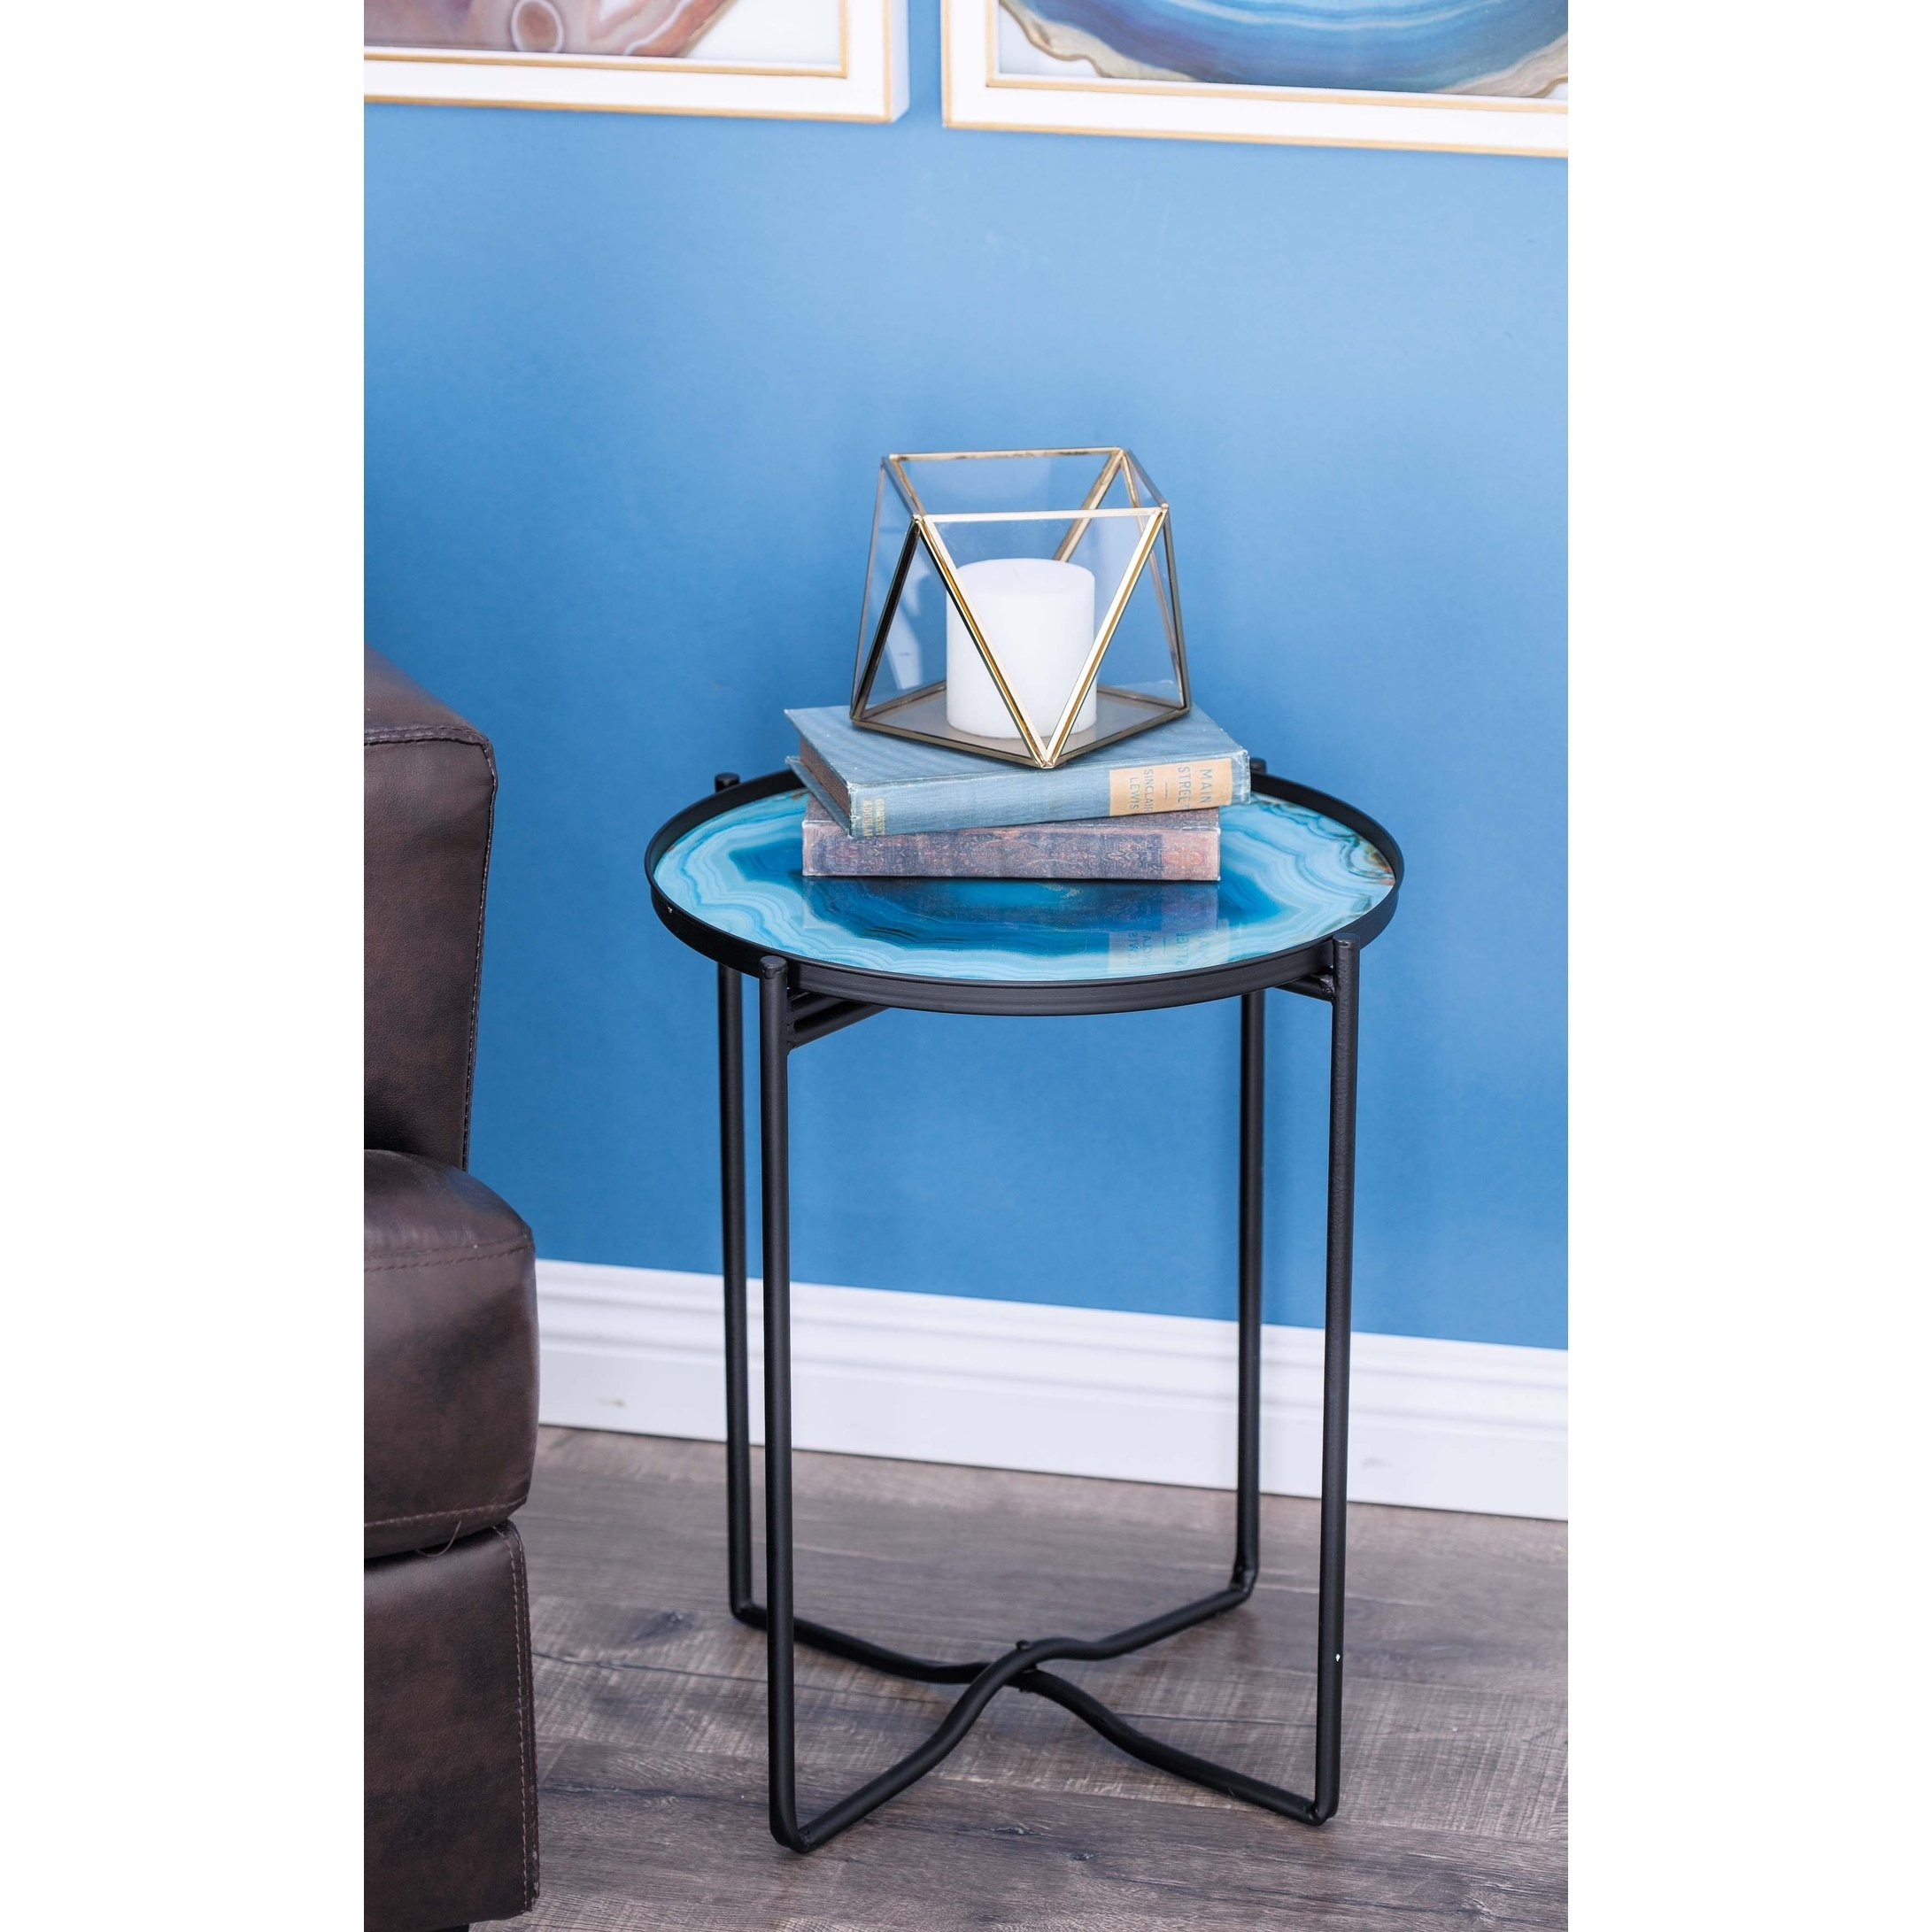 contemporary inch round blue glass accent table studio tables free shipping today root west elm clearance mirror long console behind couch black mirrored bedside white night for